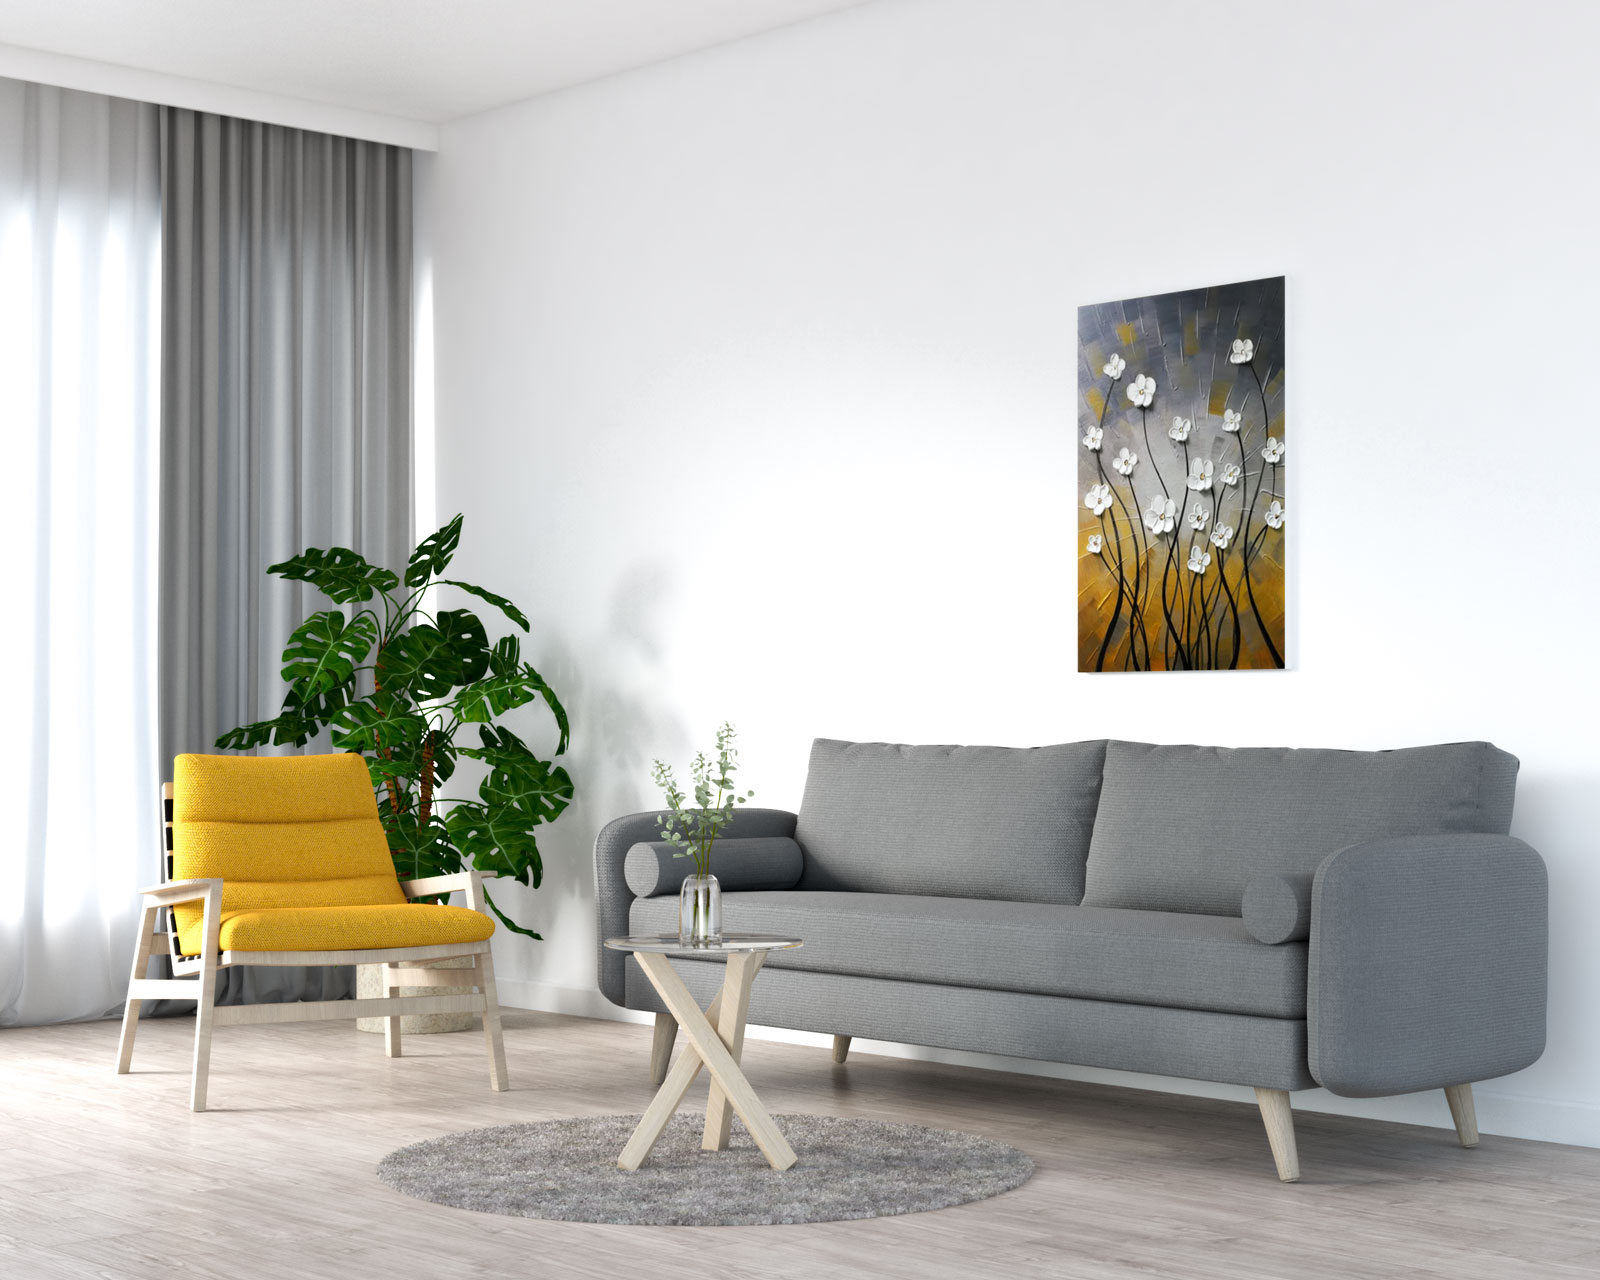 Yellow accent chair with grey sofa